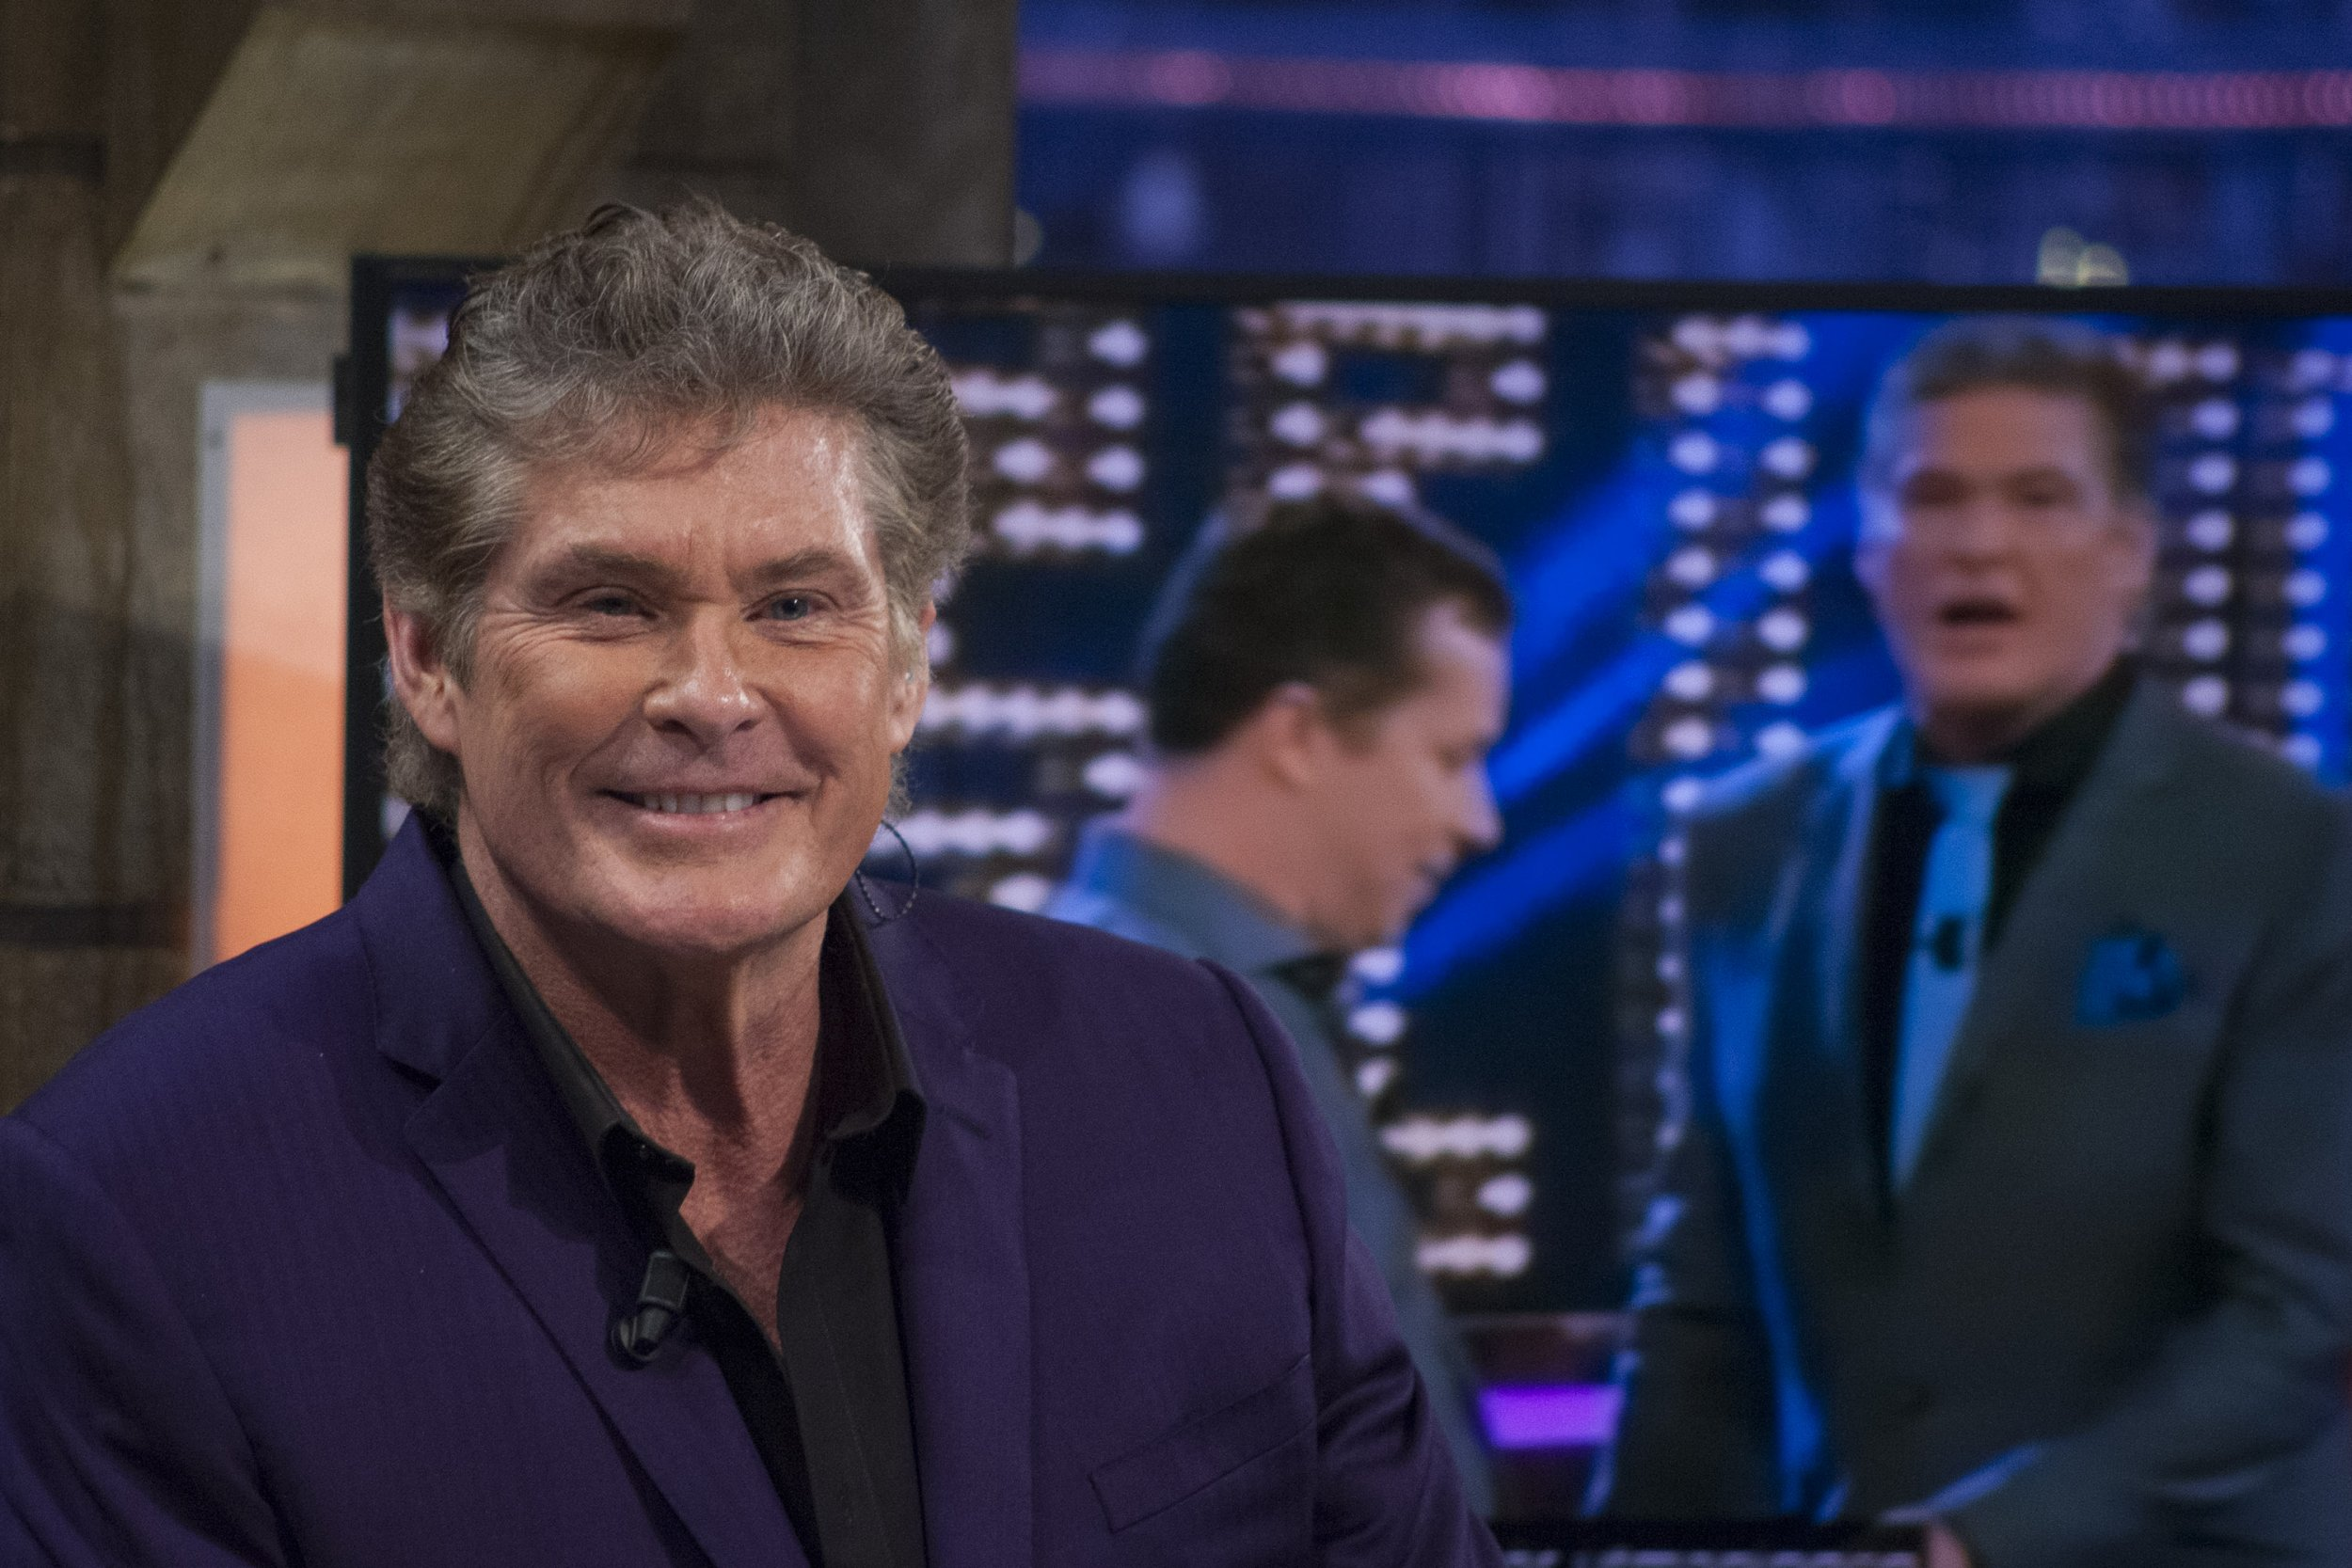 David Hasselhoff on El Hormiguero